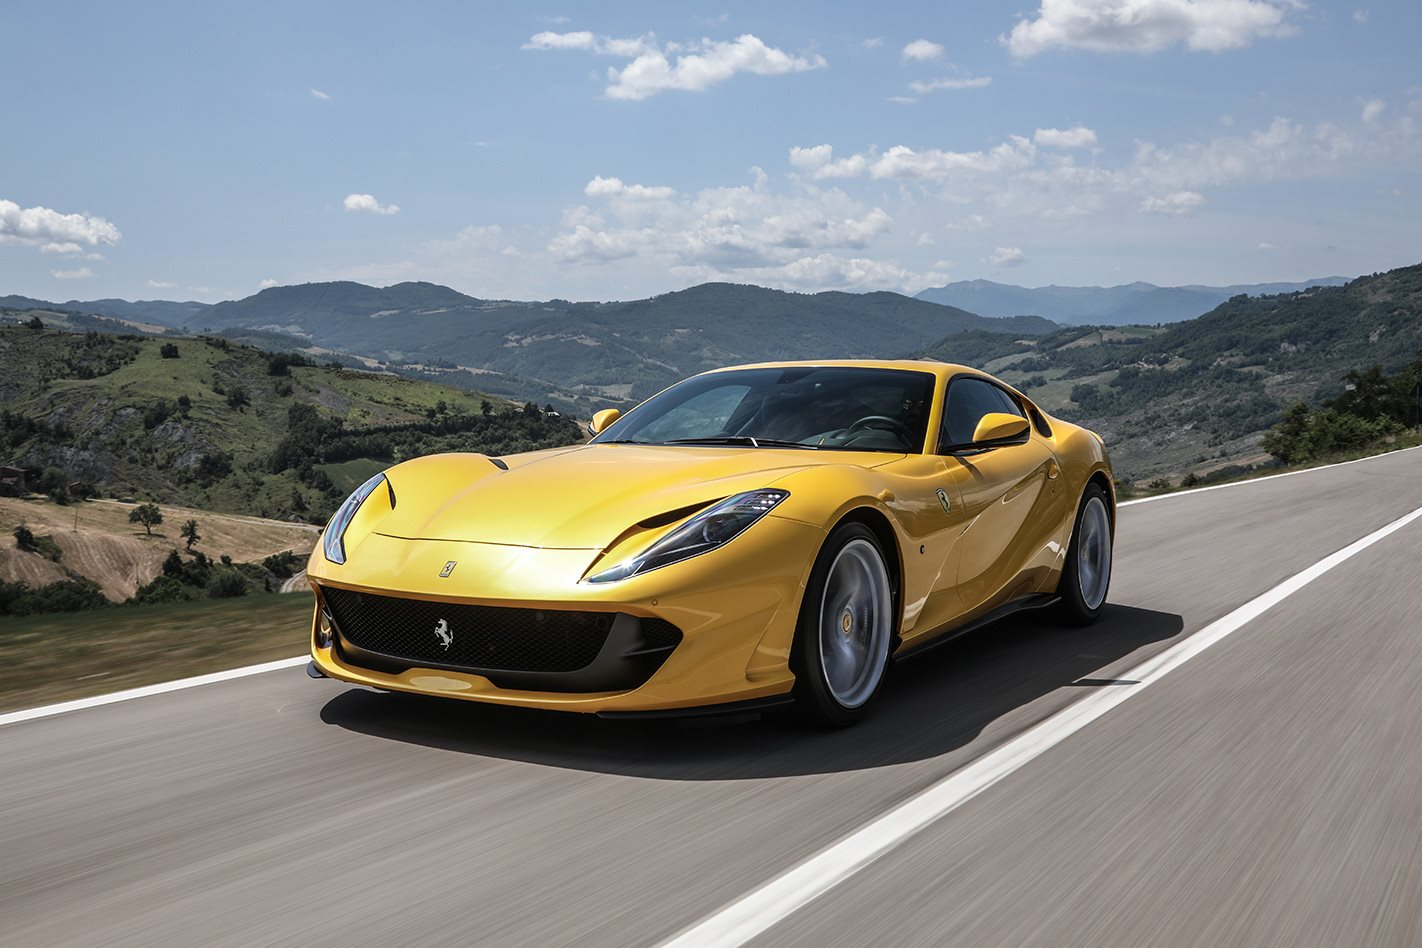 2018 ferrari 812 superfast review motor. Black Bedroom Furniture Sets. Home Design Ideas